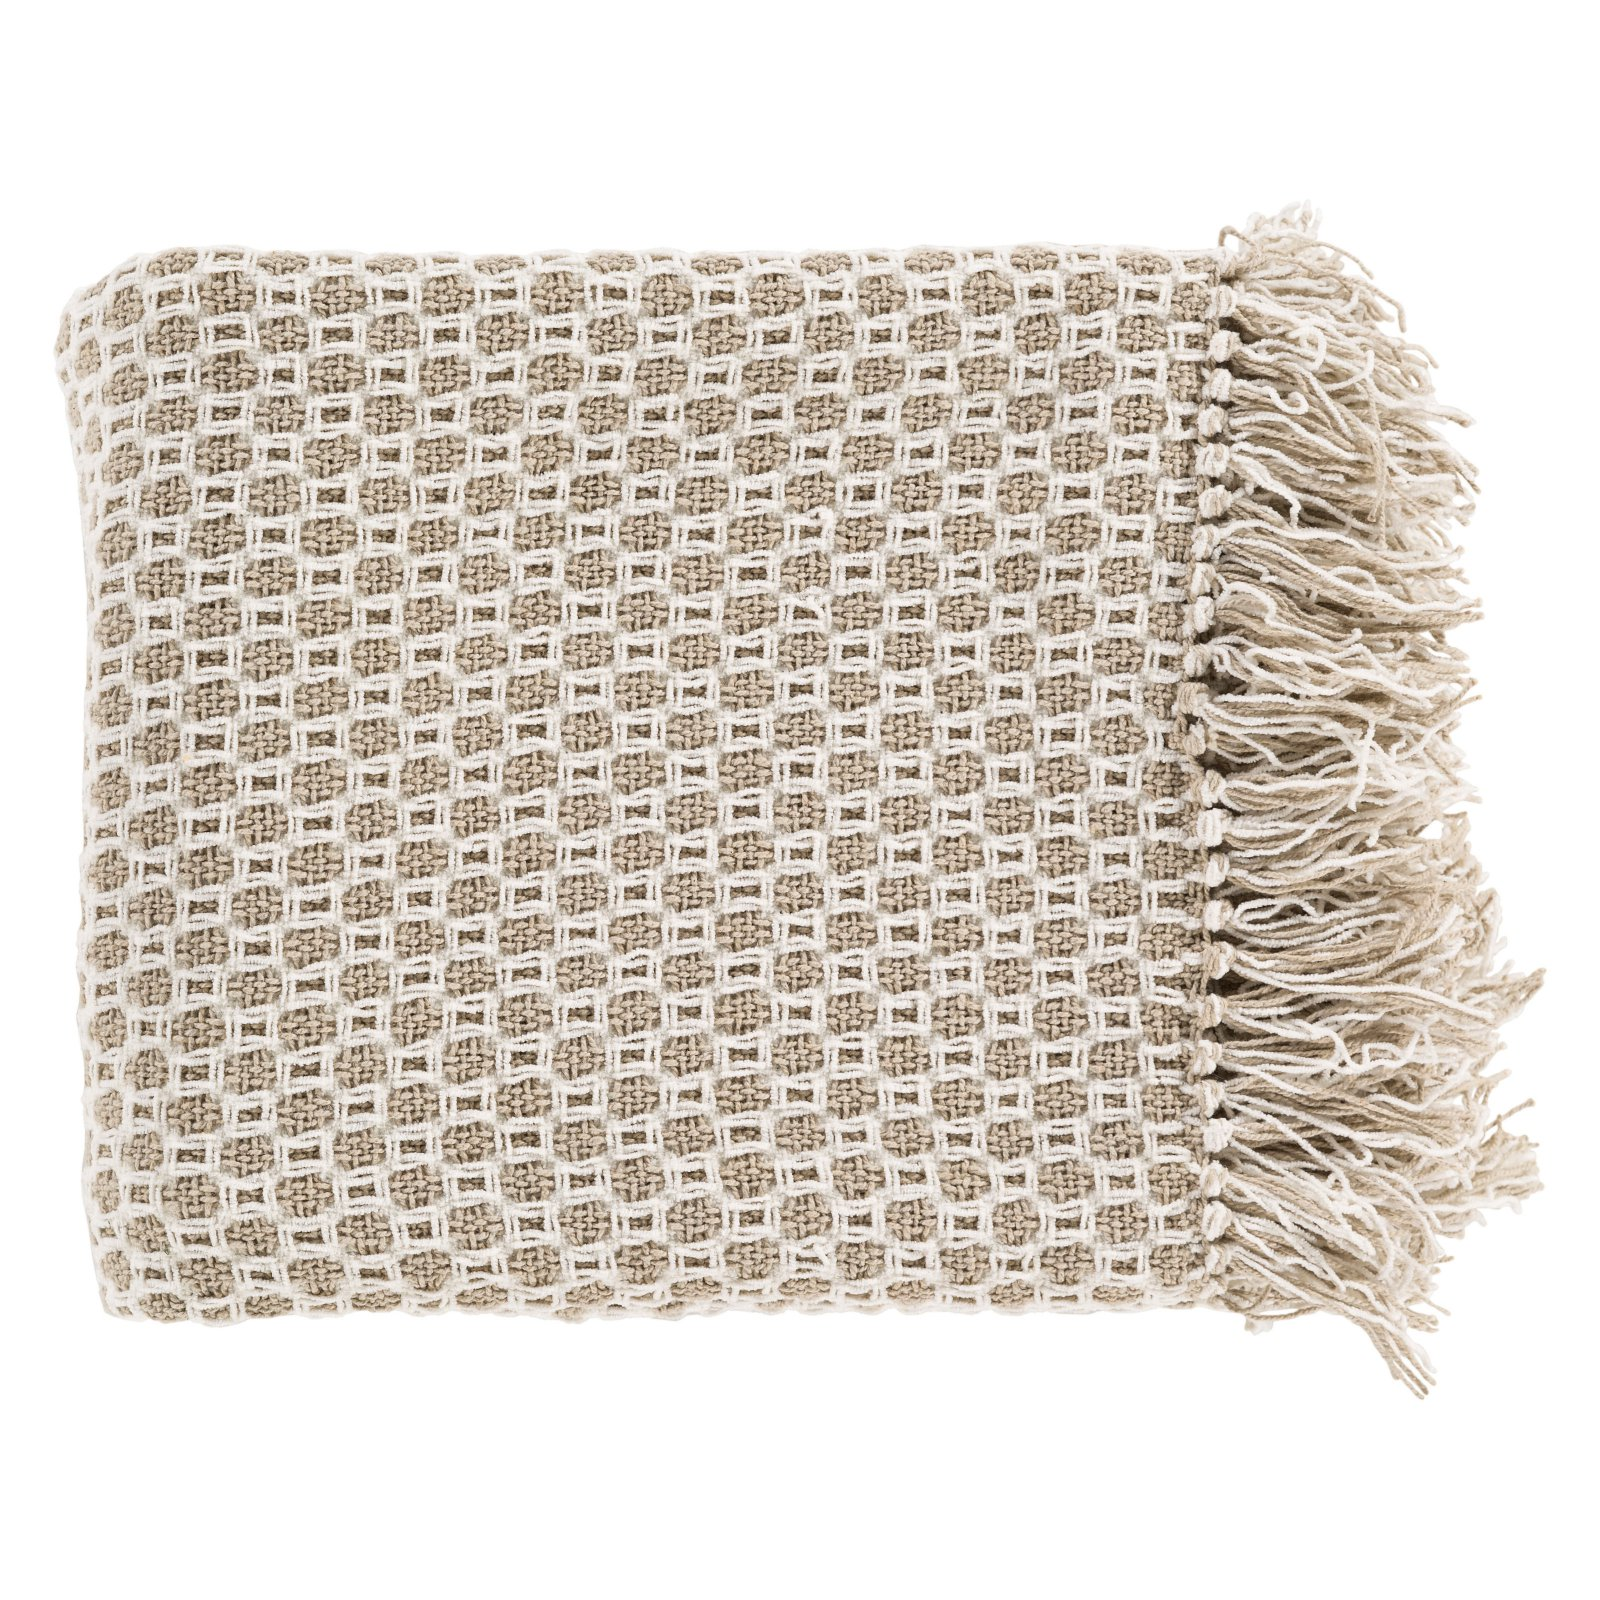 Surya Trestle Cotton Throw Blanket